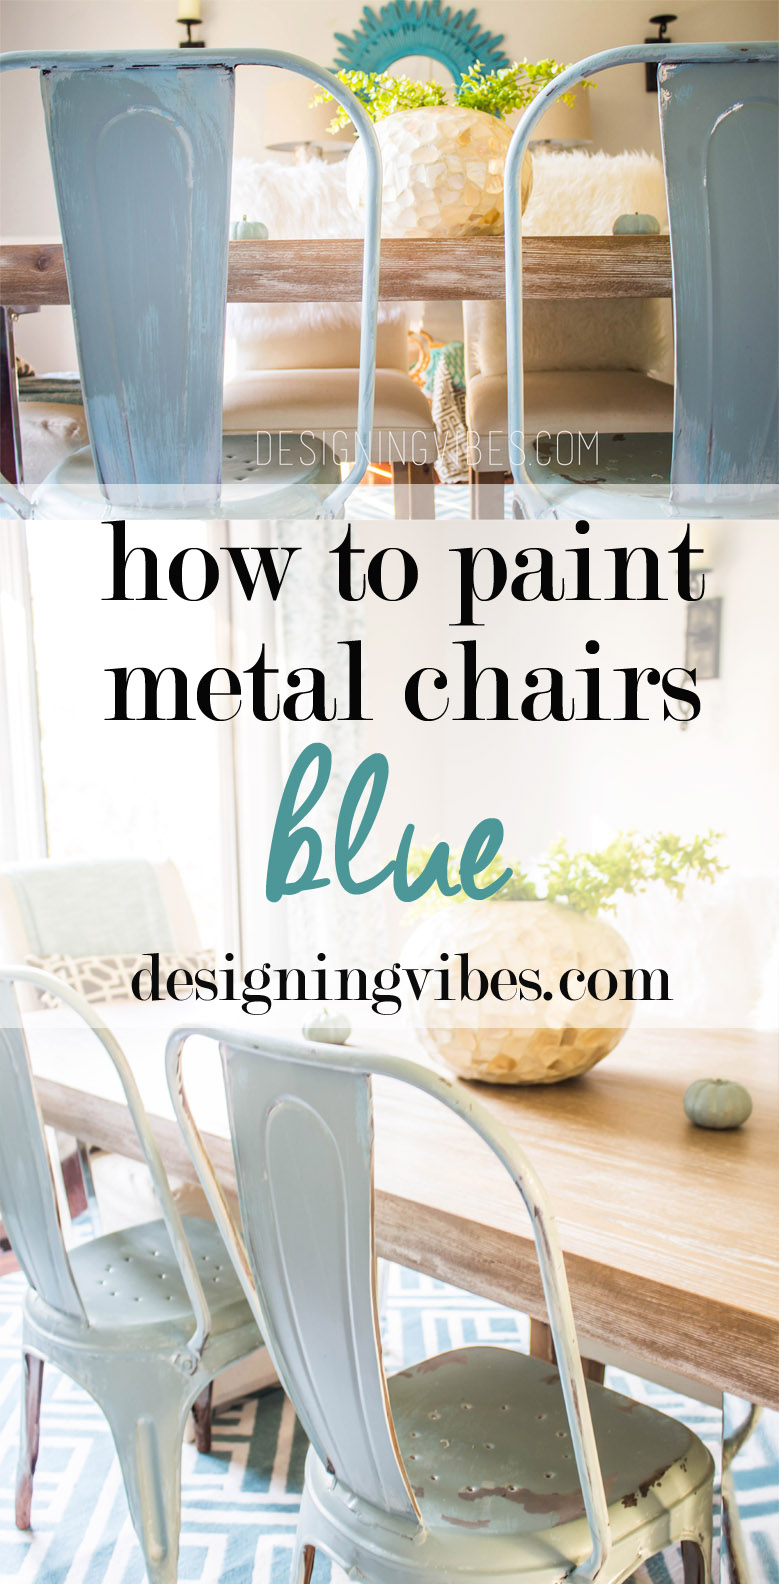 How to Paint Metal Chairs - Blue Metal Chairs